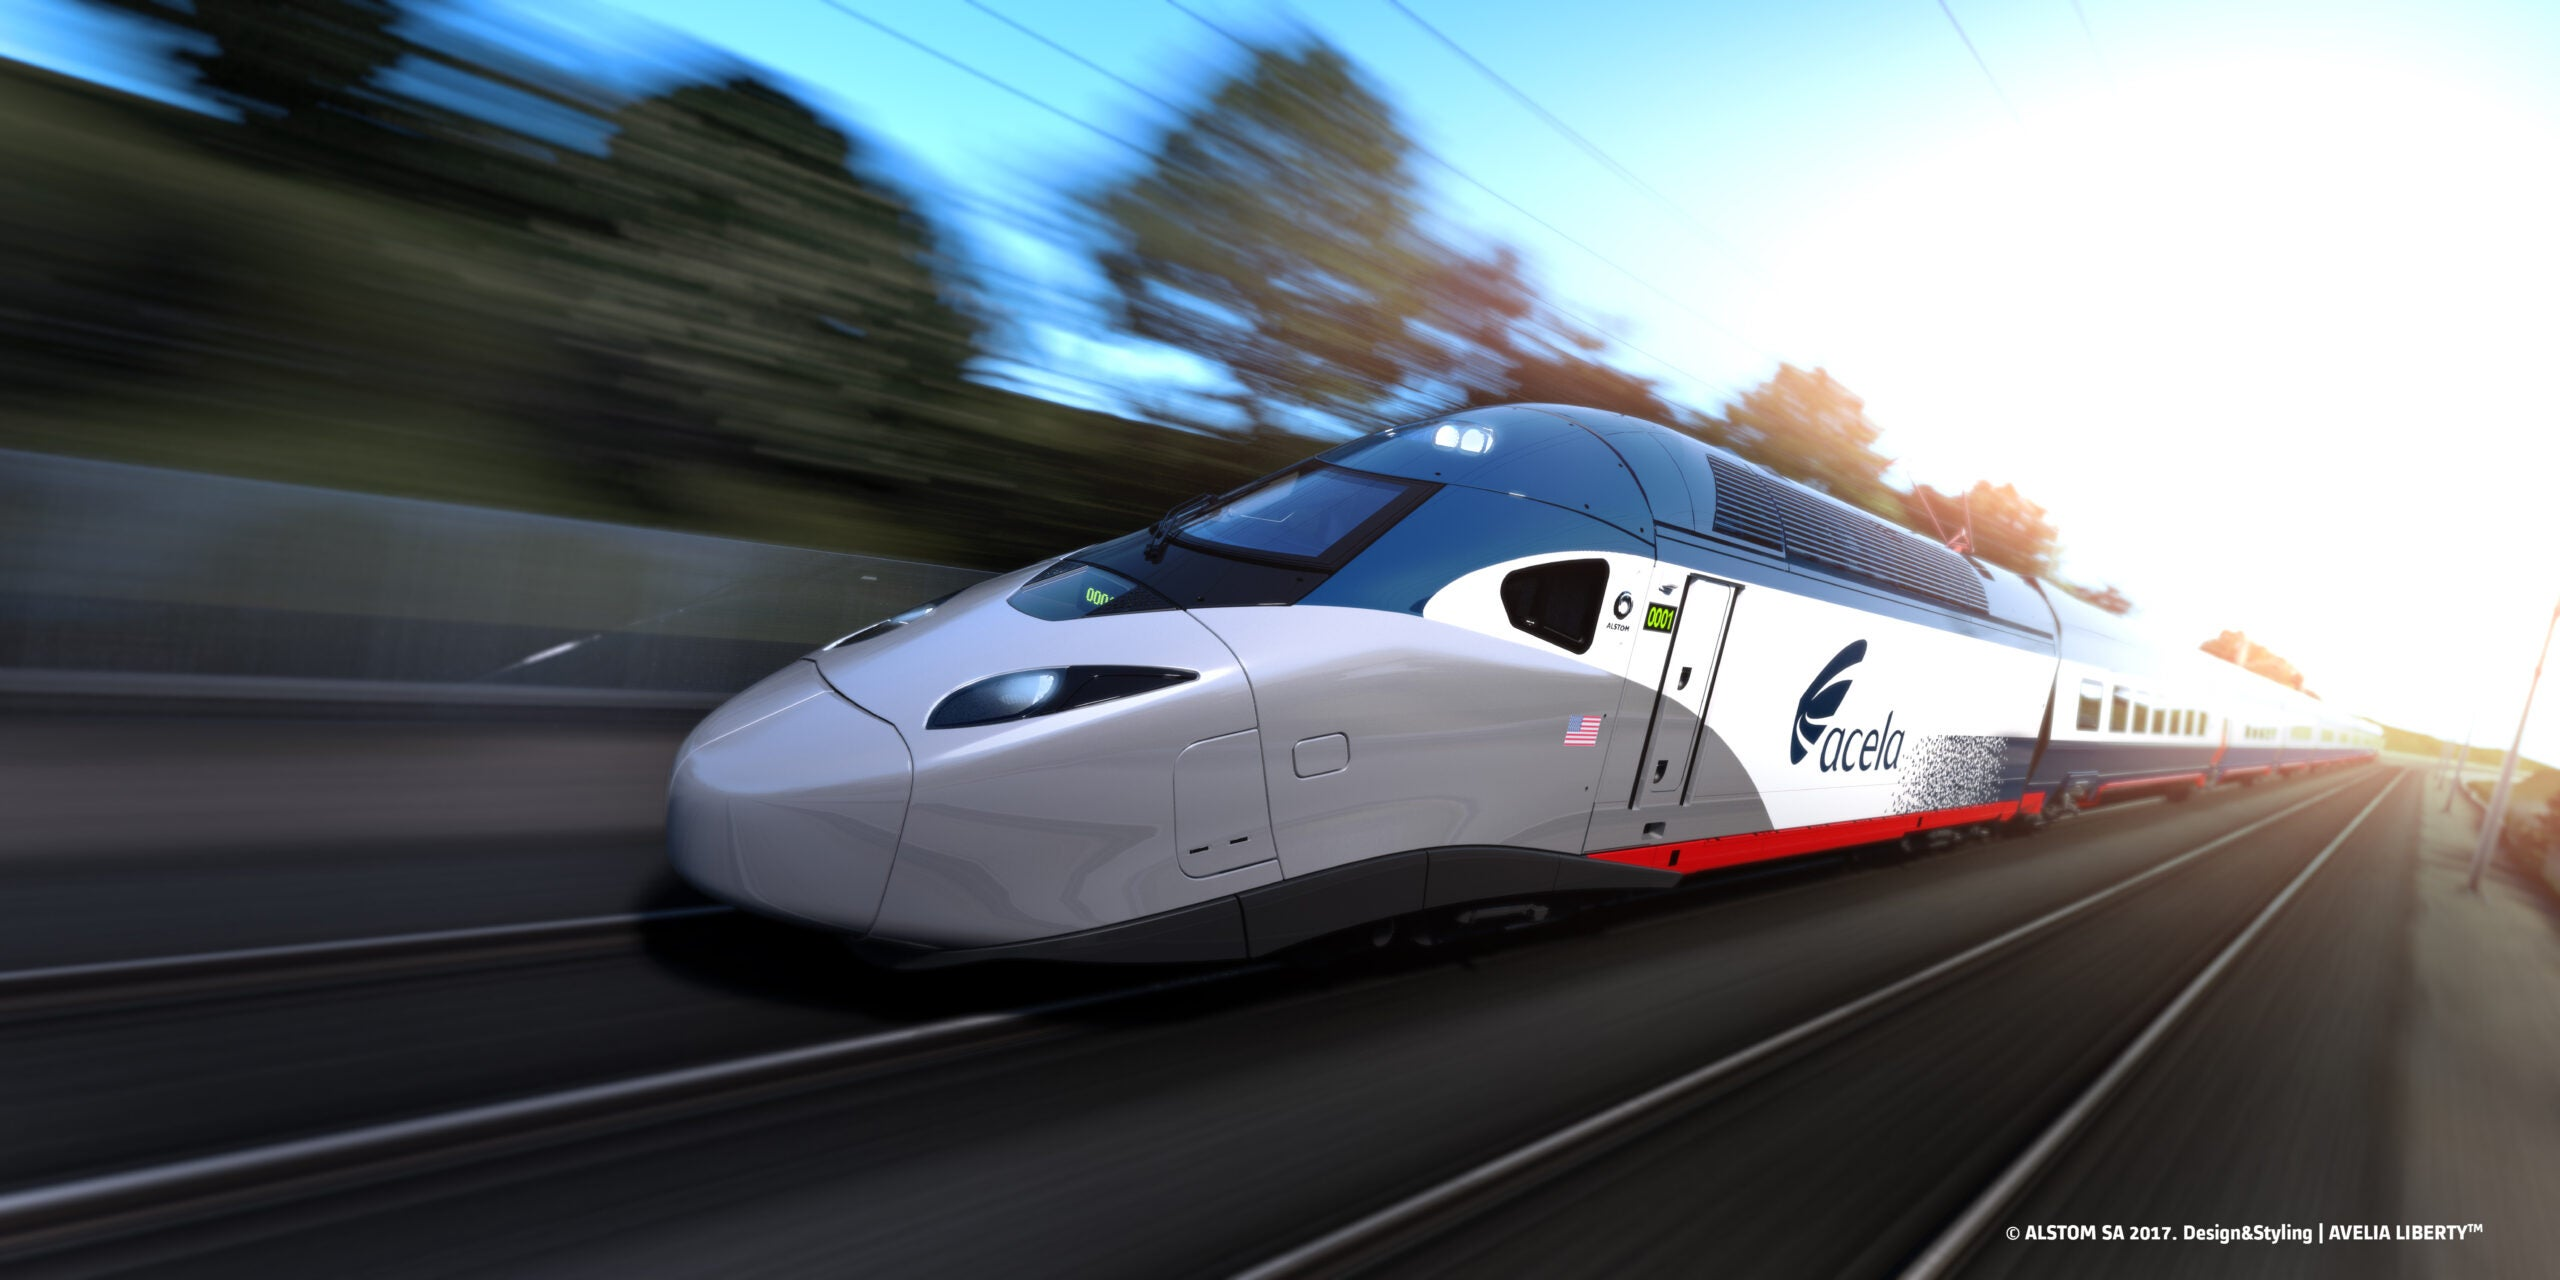 The brand new Amtrak Acela fleet is coming; Here's a look inside the new trains